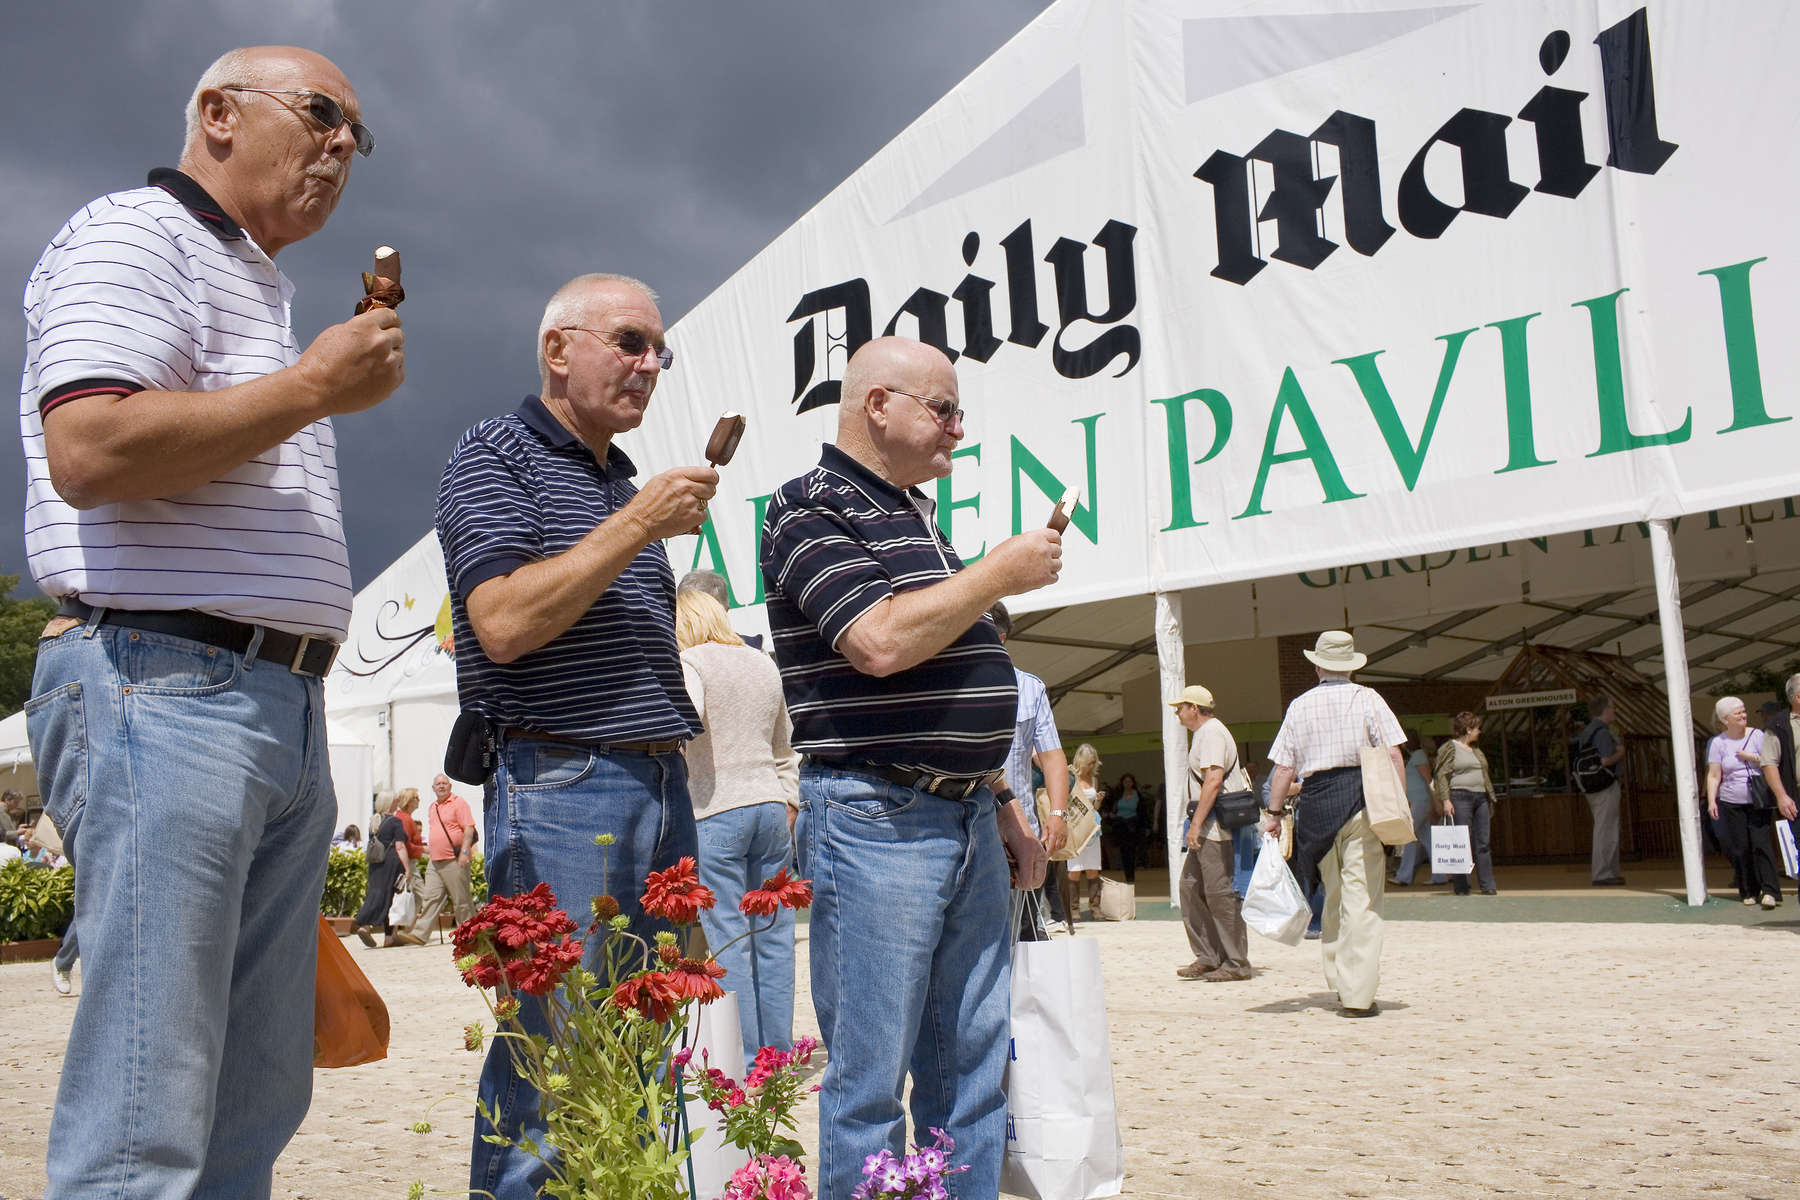 Three men eat ice creams as they wait with a bag of plants for their partners outside the Daily Mail sponsored marquee at the Hampton Court Palace annual Royal Horticultural Society summer flower show. Hampton Court Palace is a former royal palace in the London Borough of Richmond Upon Thames. Thomas Wolsey, then Archbishop of York and Chief Minister to the King took over the lease in 1514 and rebuilt the 14th Century manor house over the next 7 years (1515-1521) to form the nucleus of the present palace before Henry VIII took it as his residence.